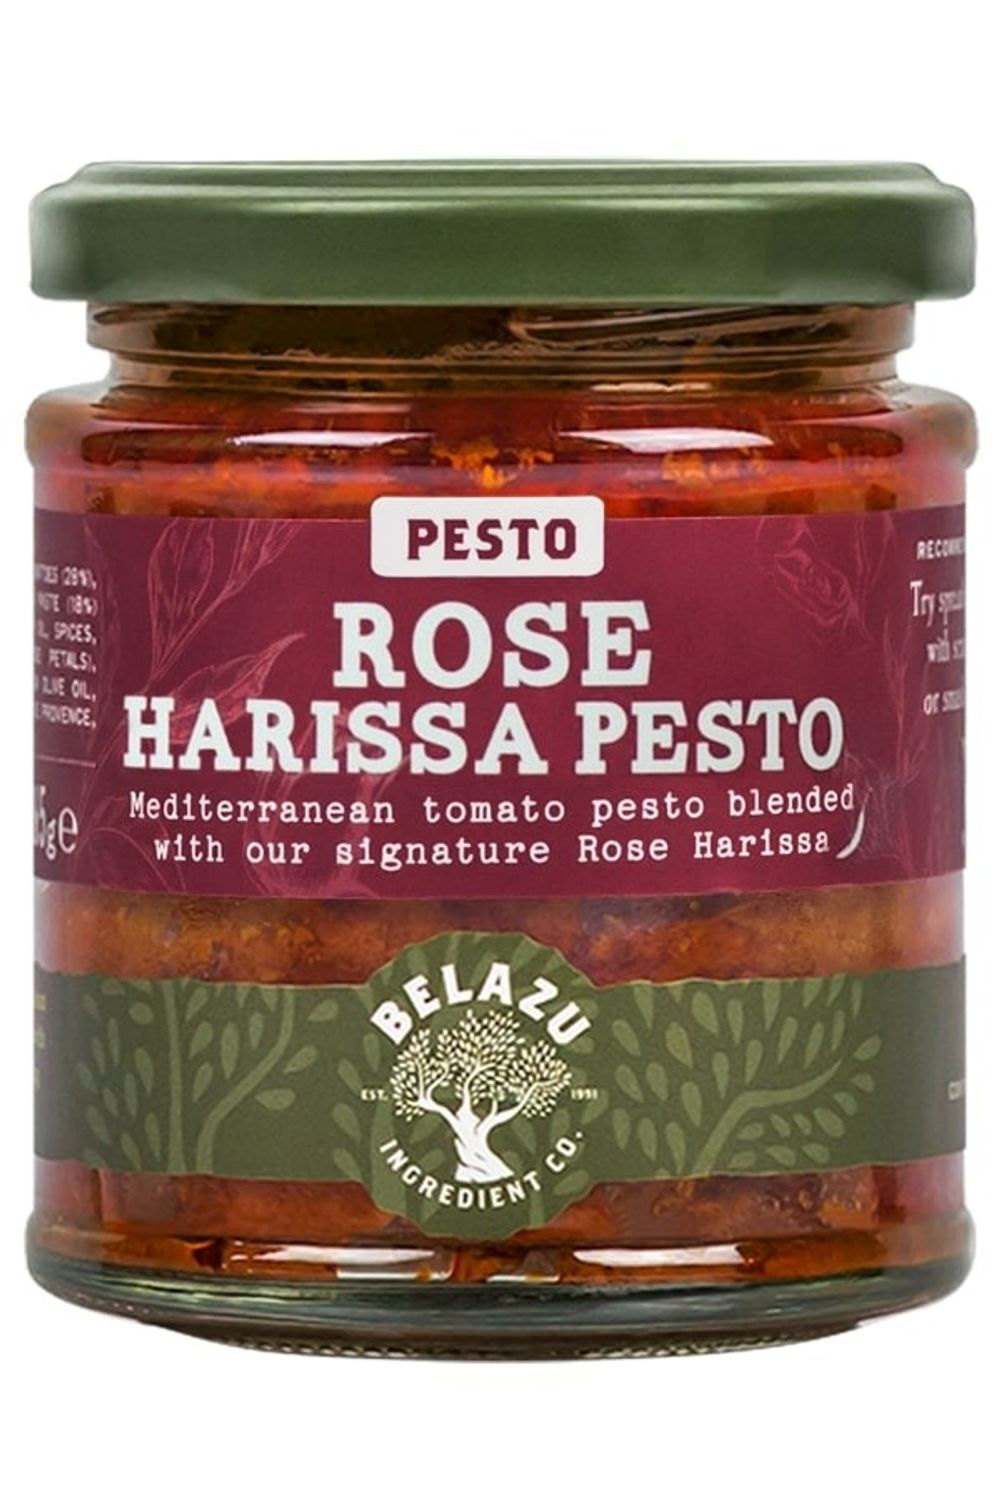 Rose Harissa Pesto